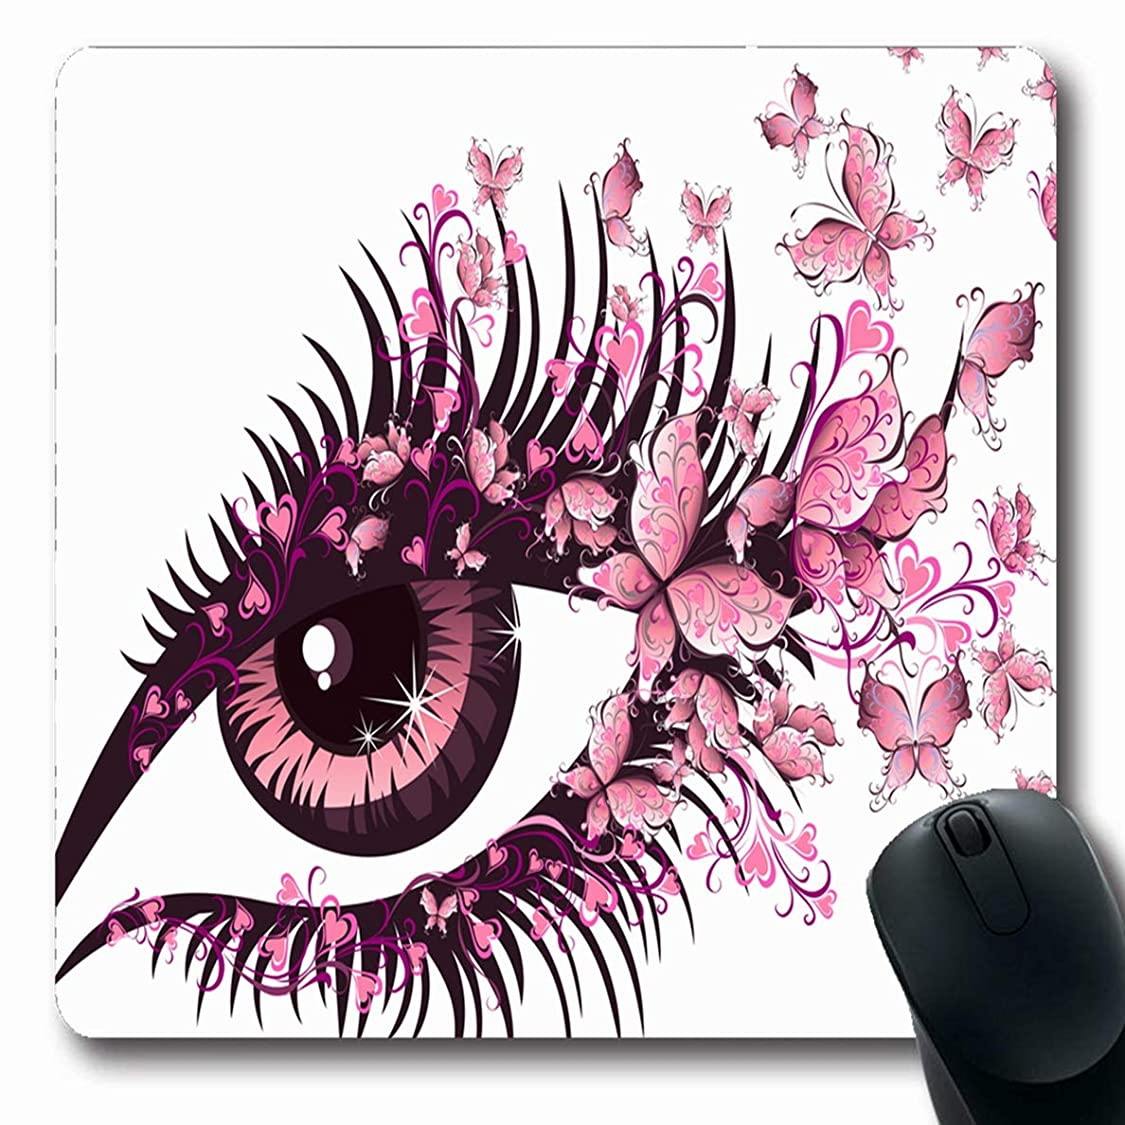 Ahawoso Mousepad for Computer Notebook Pink Butterfly Eye Butterflies Abstract Sexy Girl View Vision Design Eyebrow Oblong Shape 7.9 x 9.5 Inches Non-Slip Gaming Mouse Pad av54739150566874